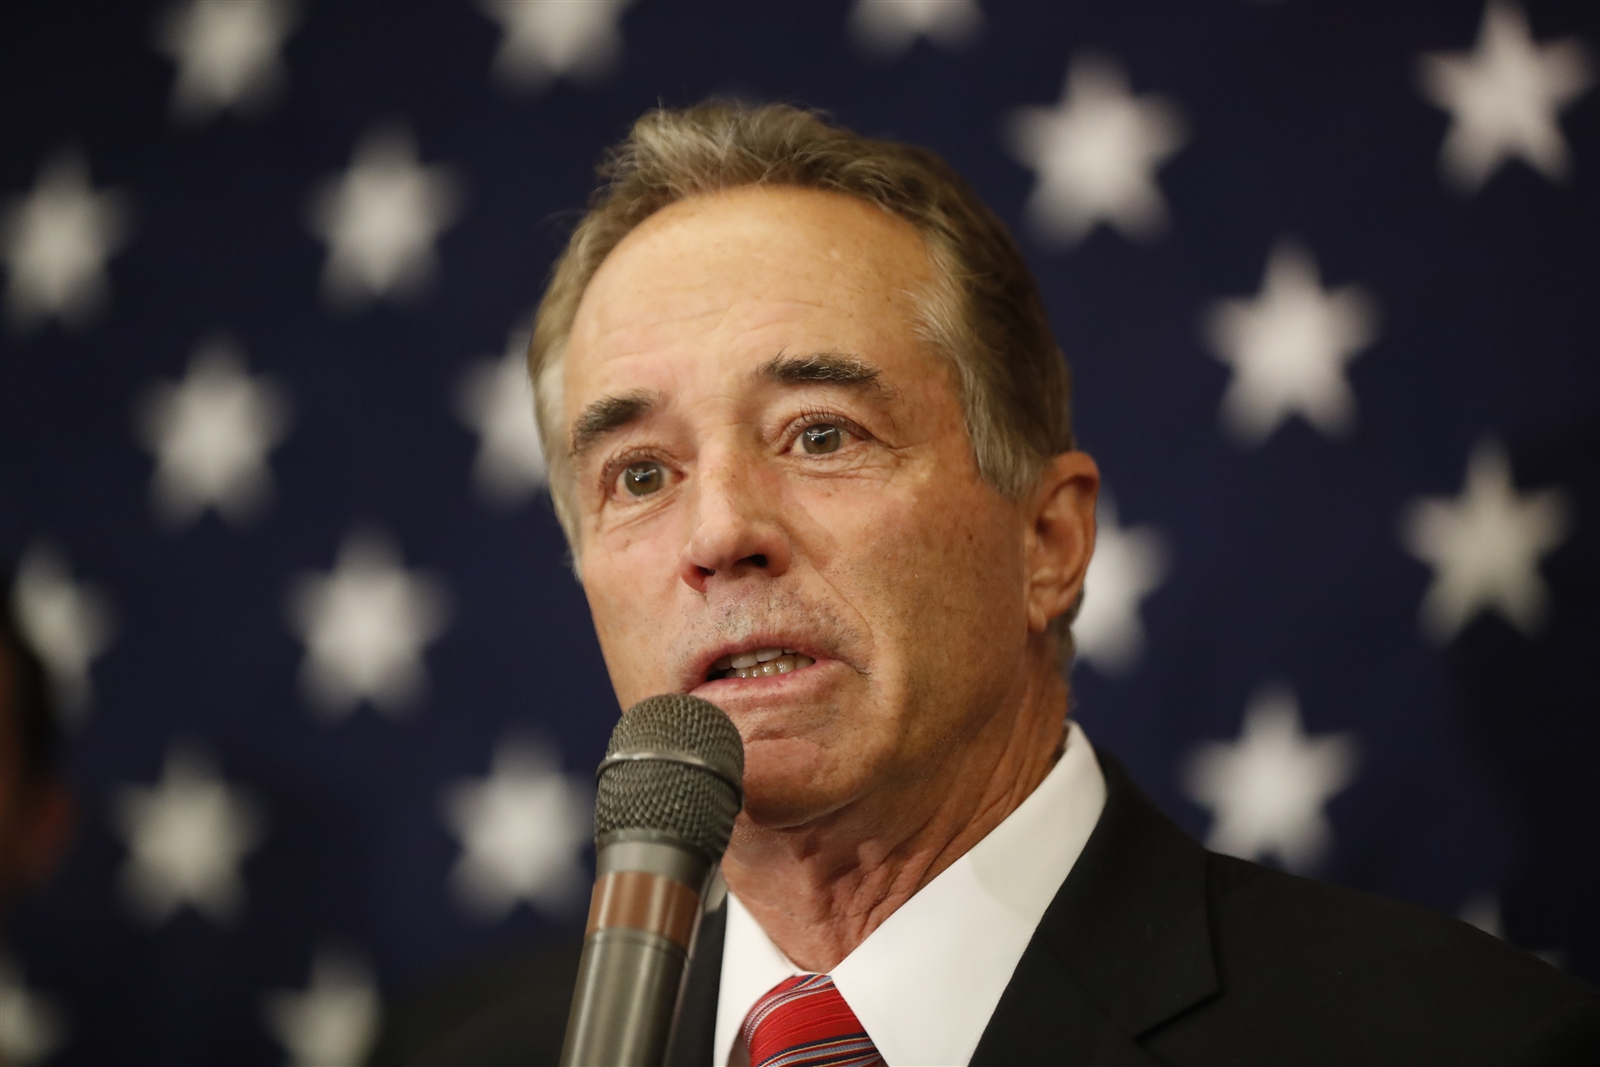 Rep. Chris Collins said Trump's tax proposal would be a 'very heavy lift' to get through Congress. (Harry Scull Jr./Buffalo News)